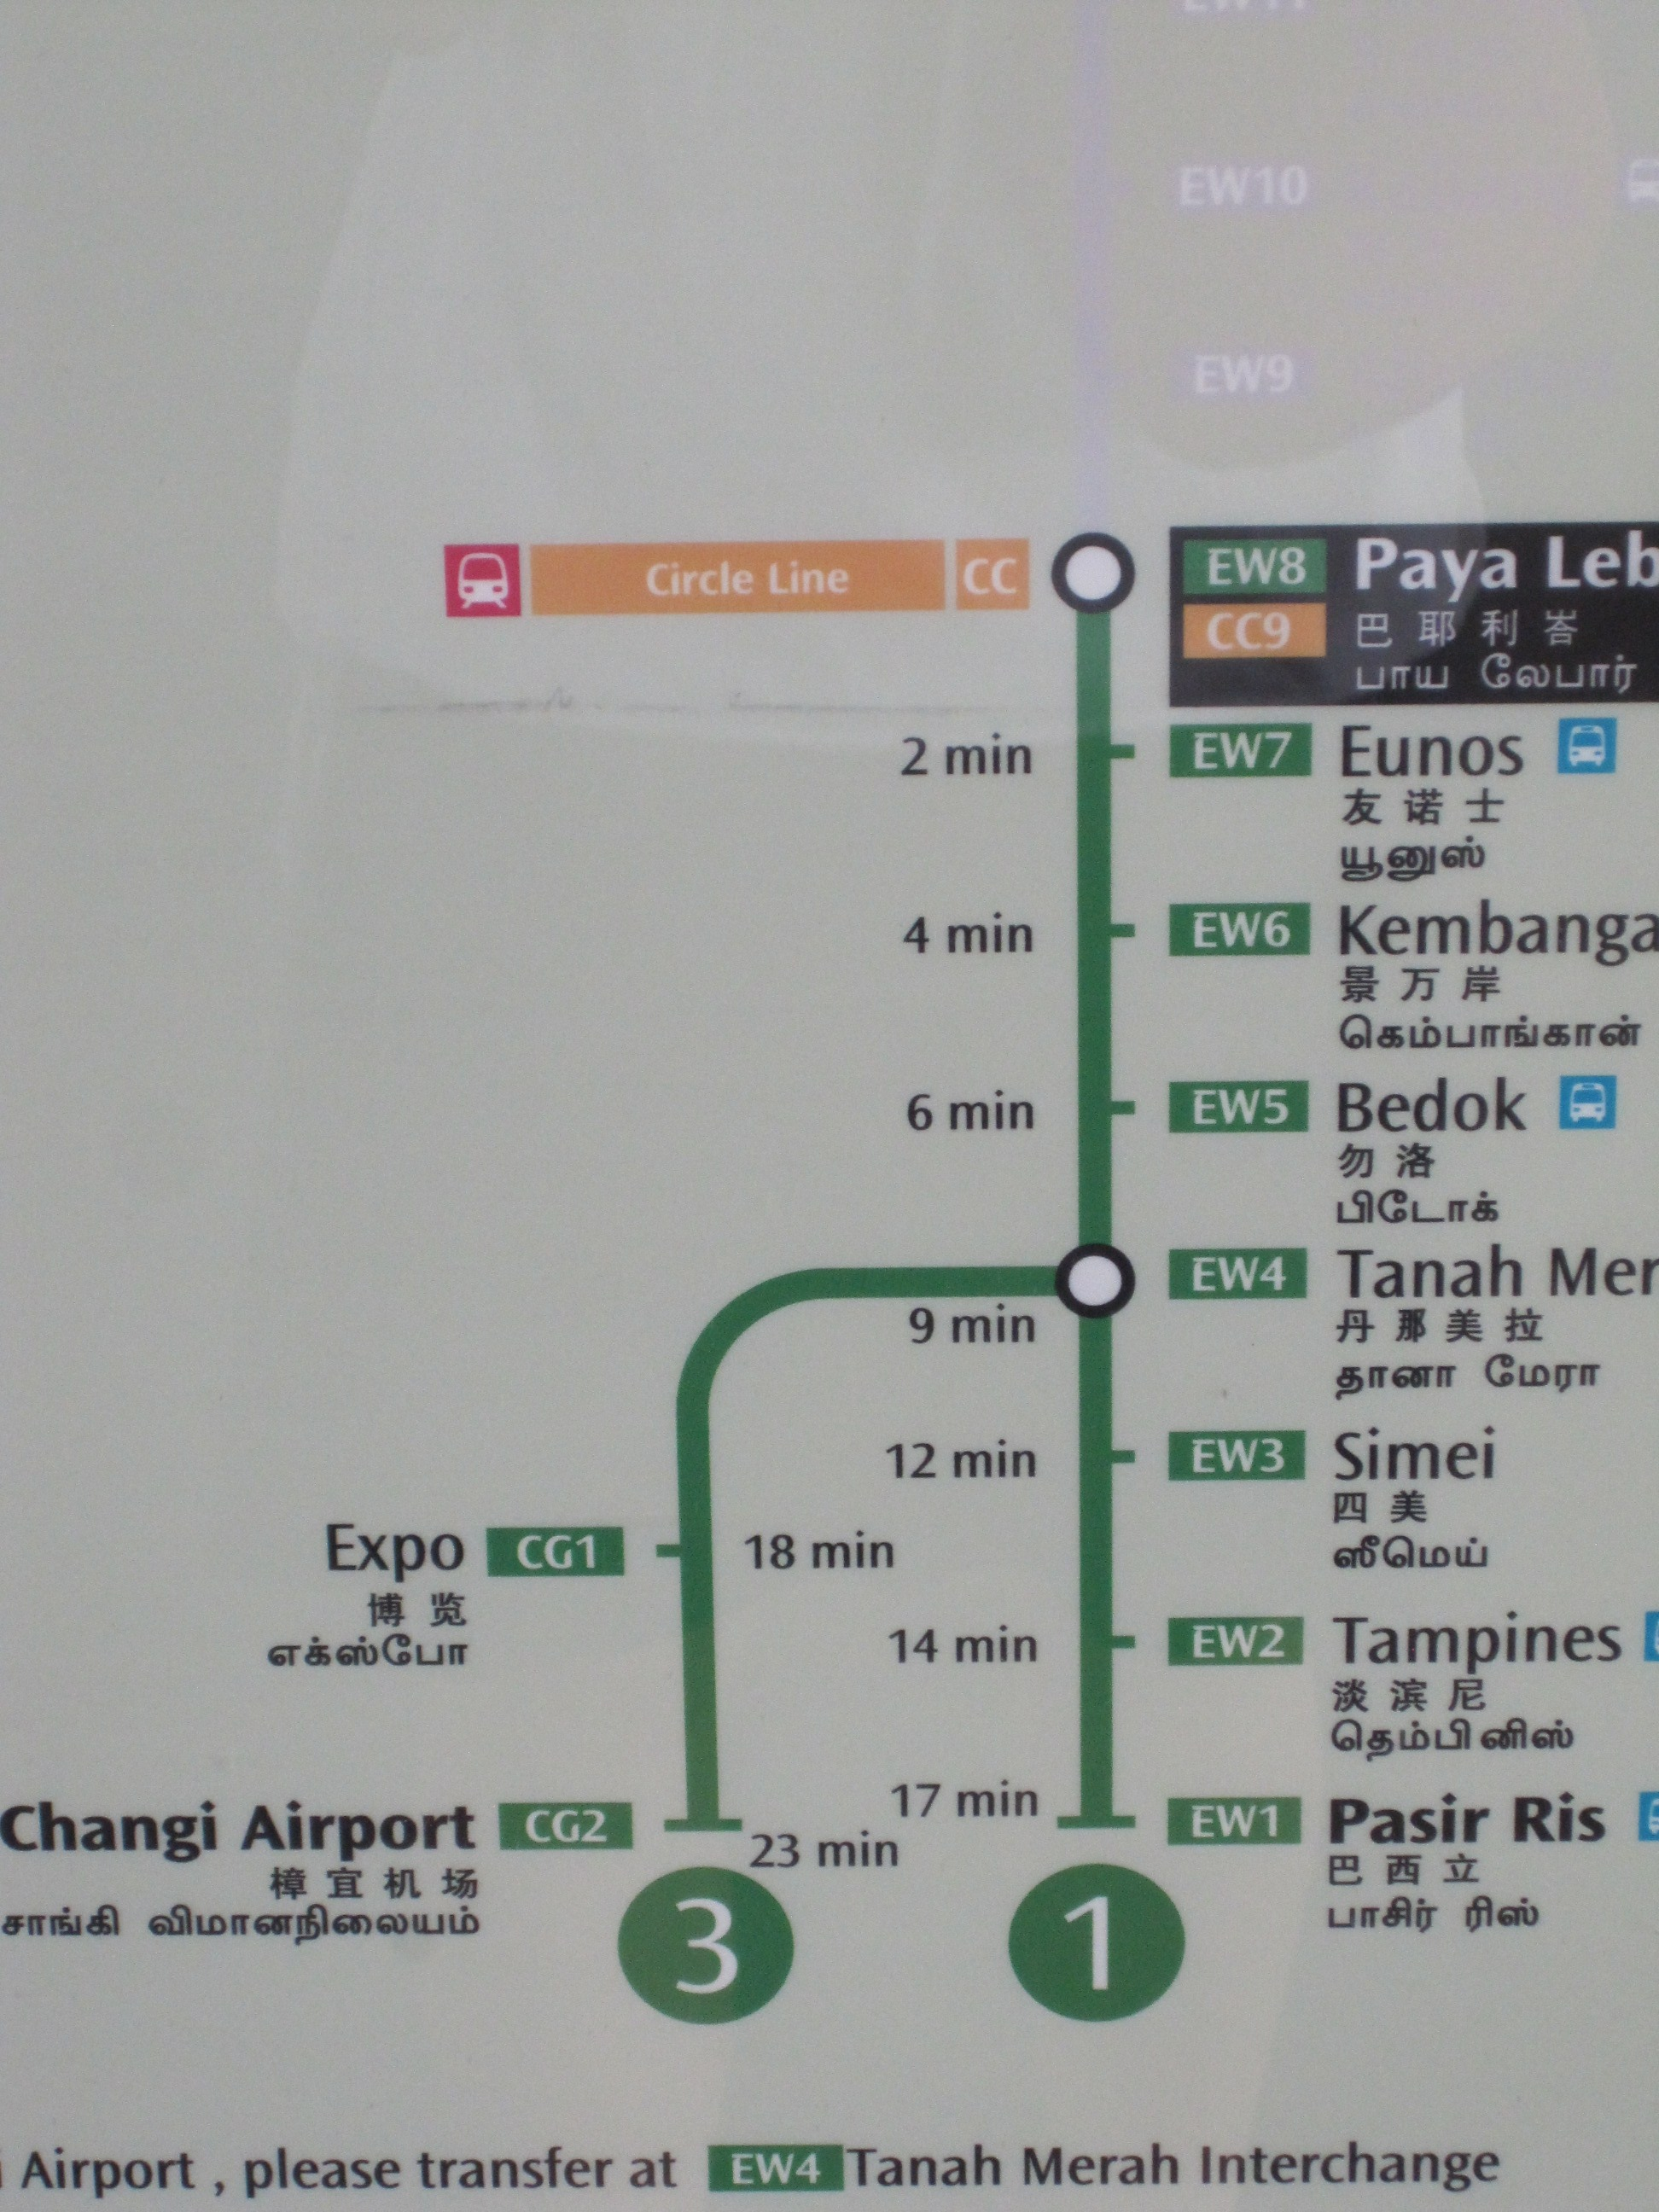 Singapore mrt map route(subway, metro transport) by momostorm.